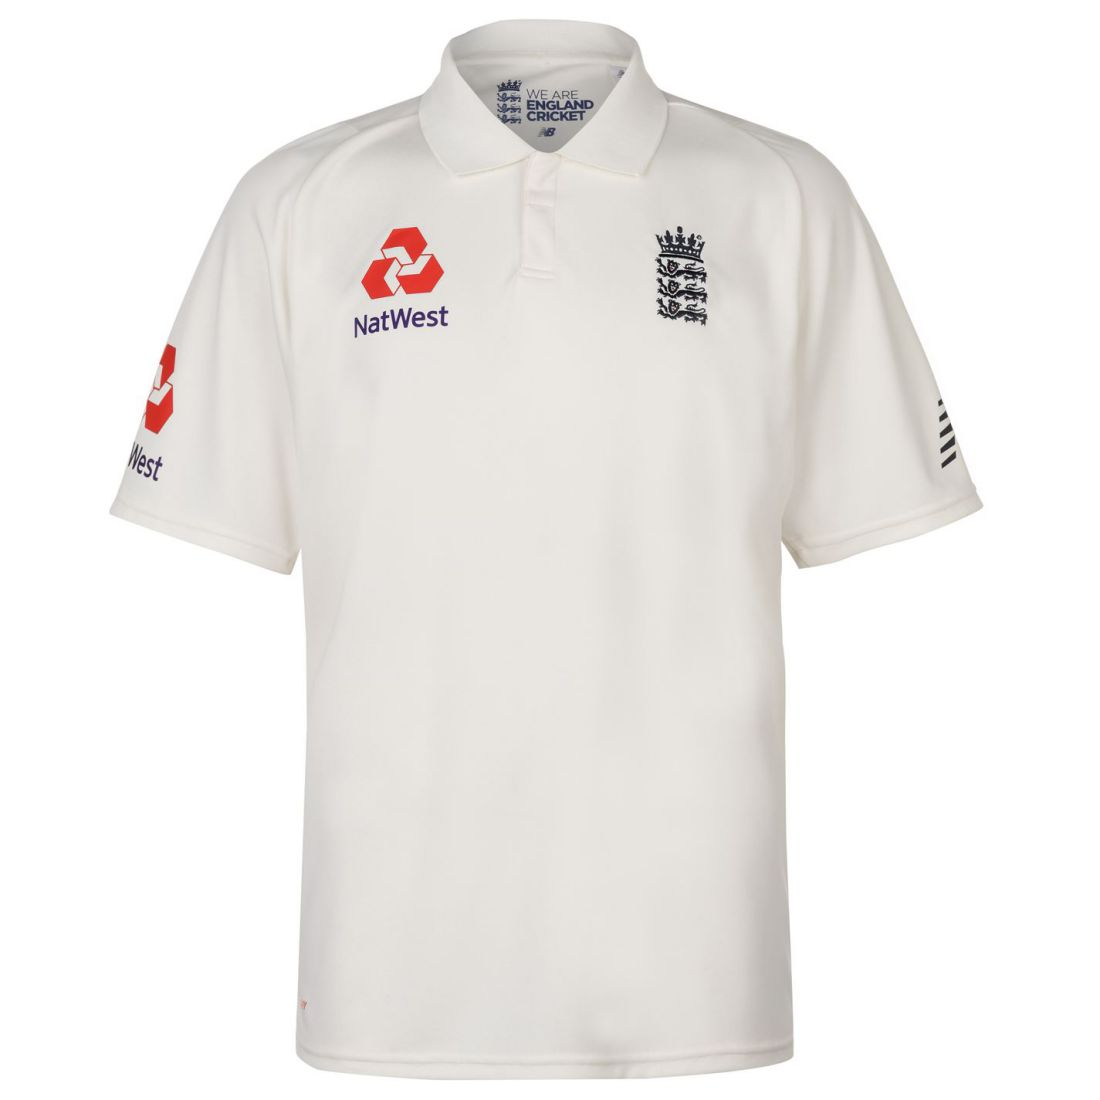 c4fd5de9afccd Details about New Balance England Cricket Test Shirt 2018 2019 Mens Gents T  Tee Top Short